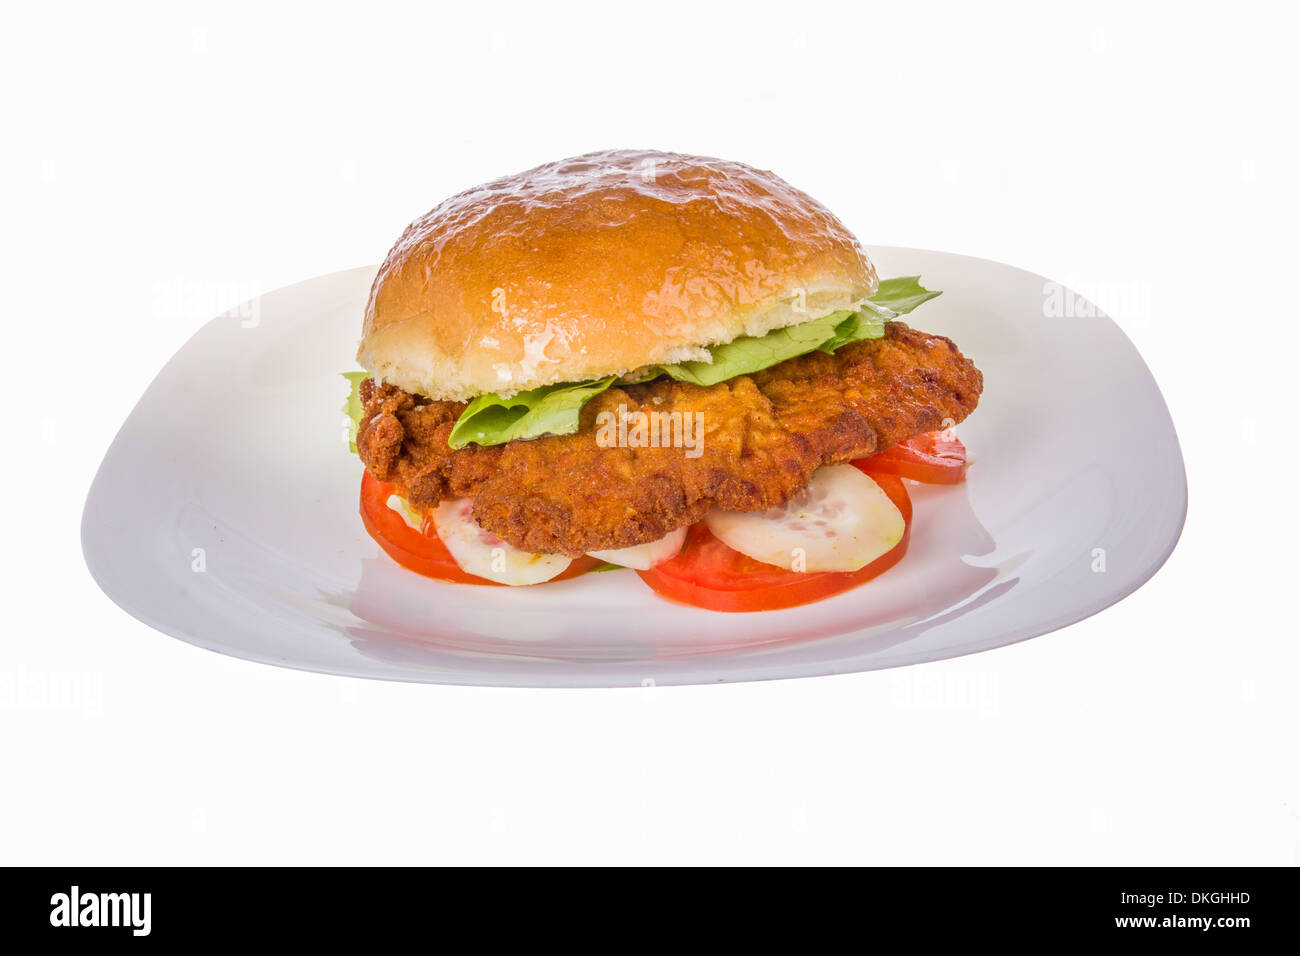 veal in bun with cucumber and tomato and lettuce - Stock Image